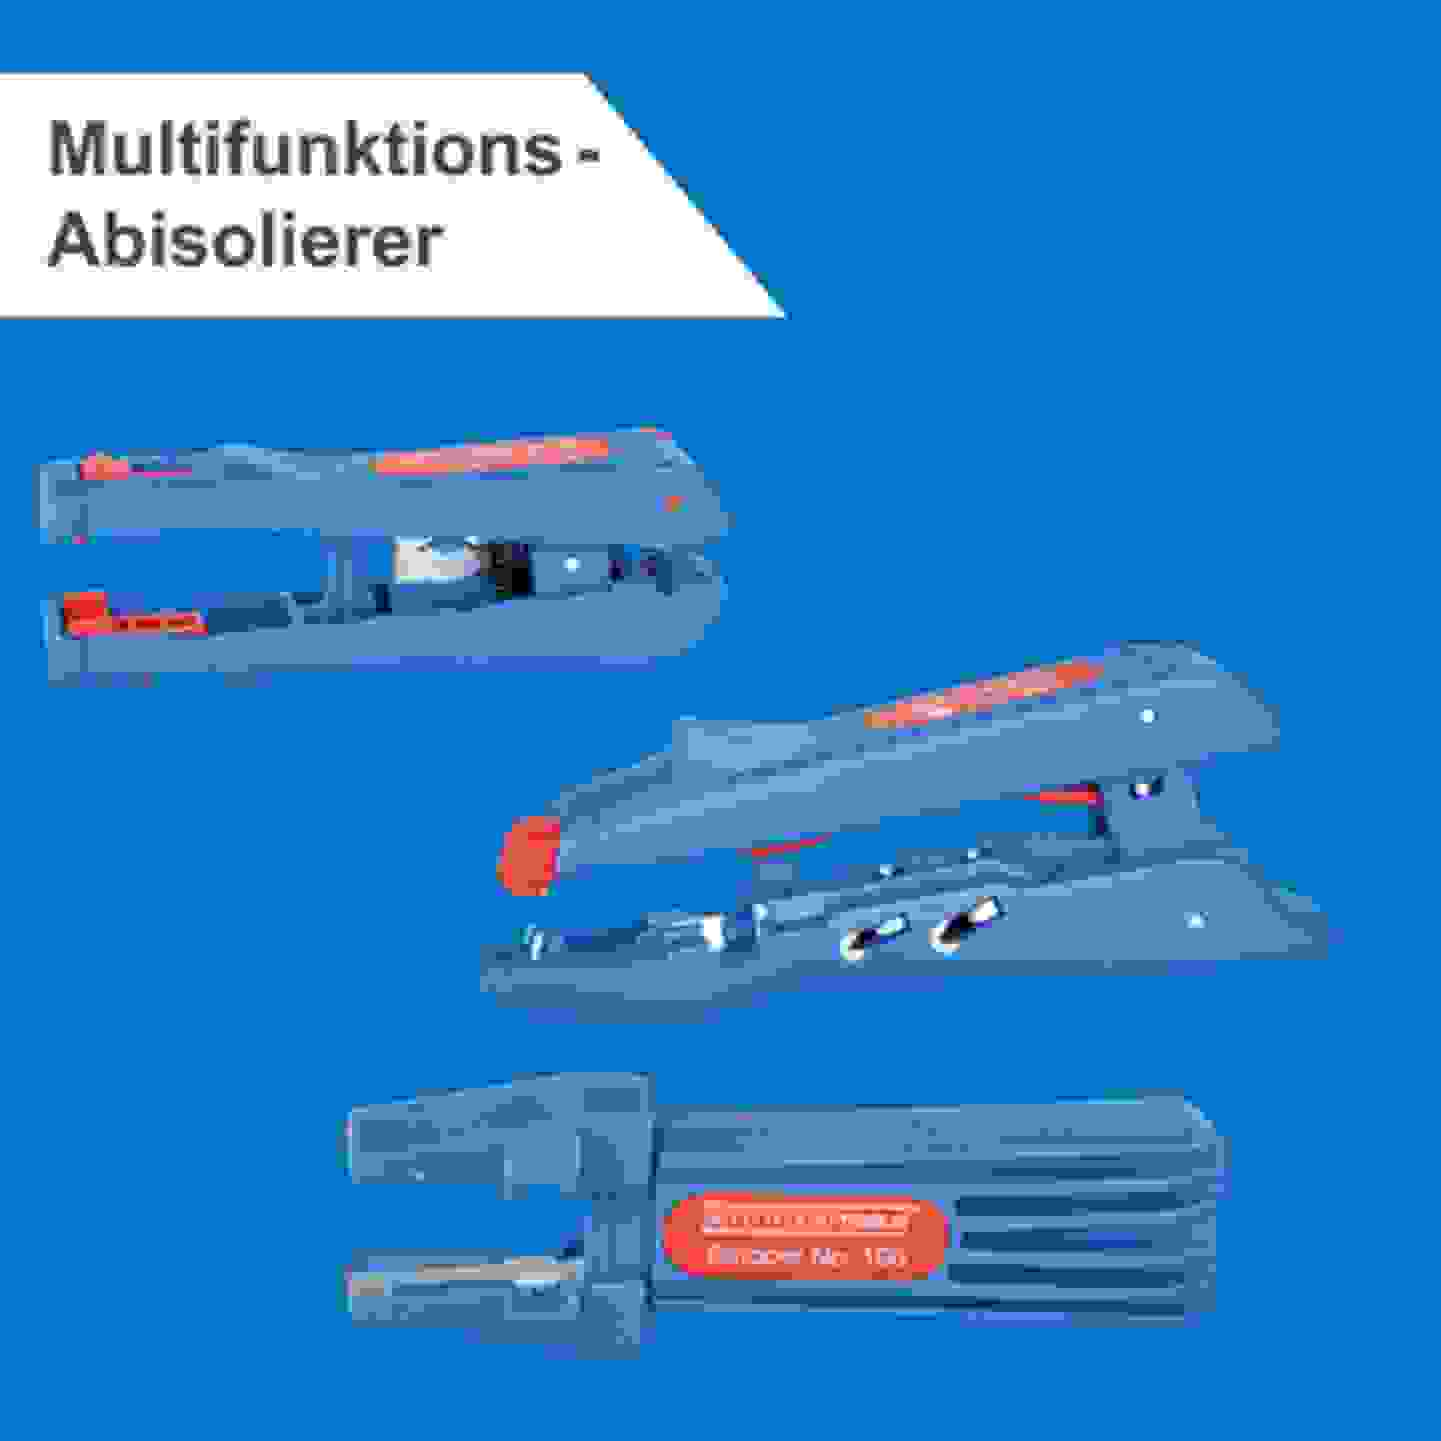 Multifunktions-Abisolierer